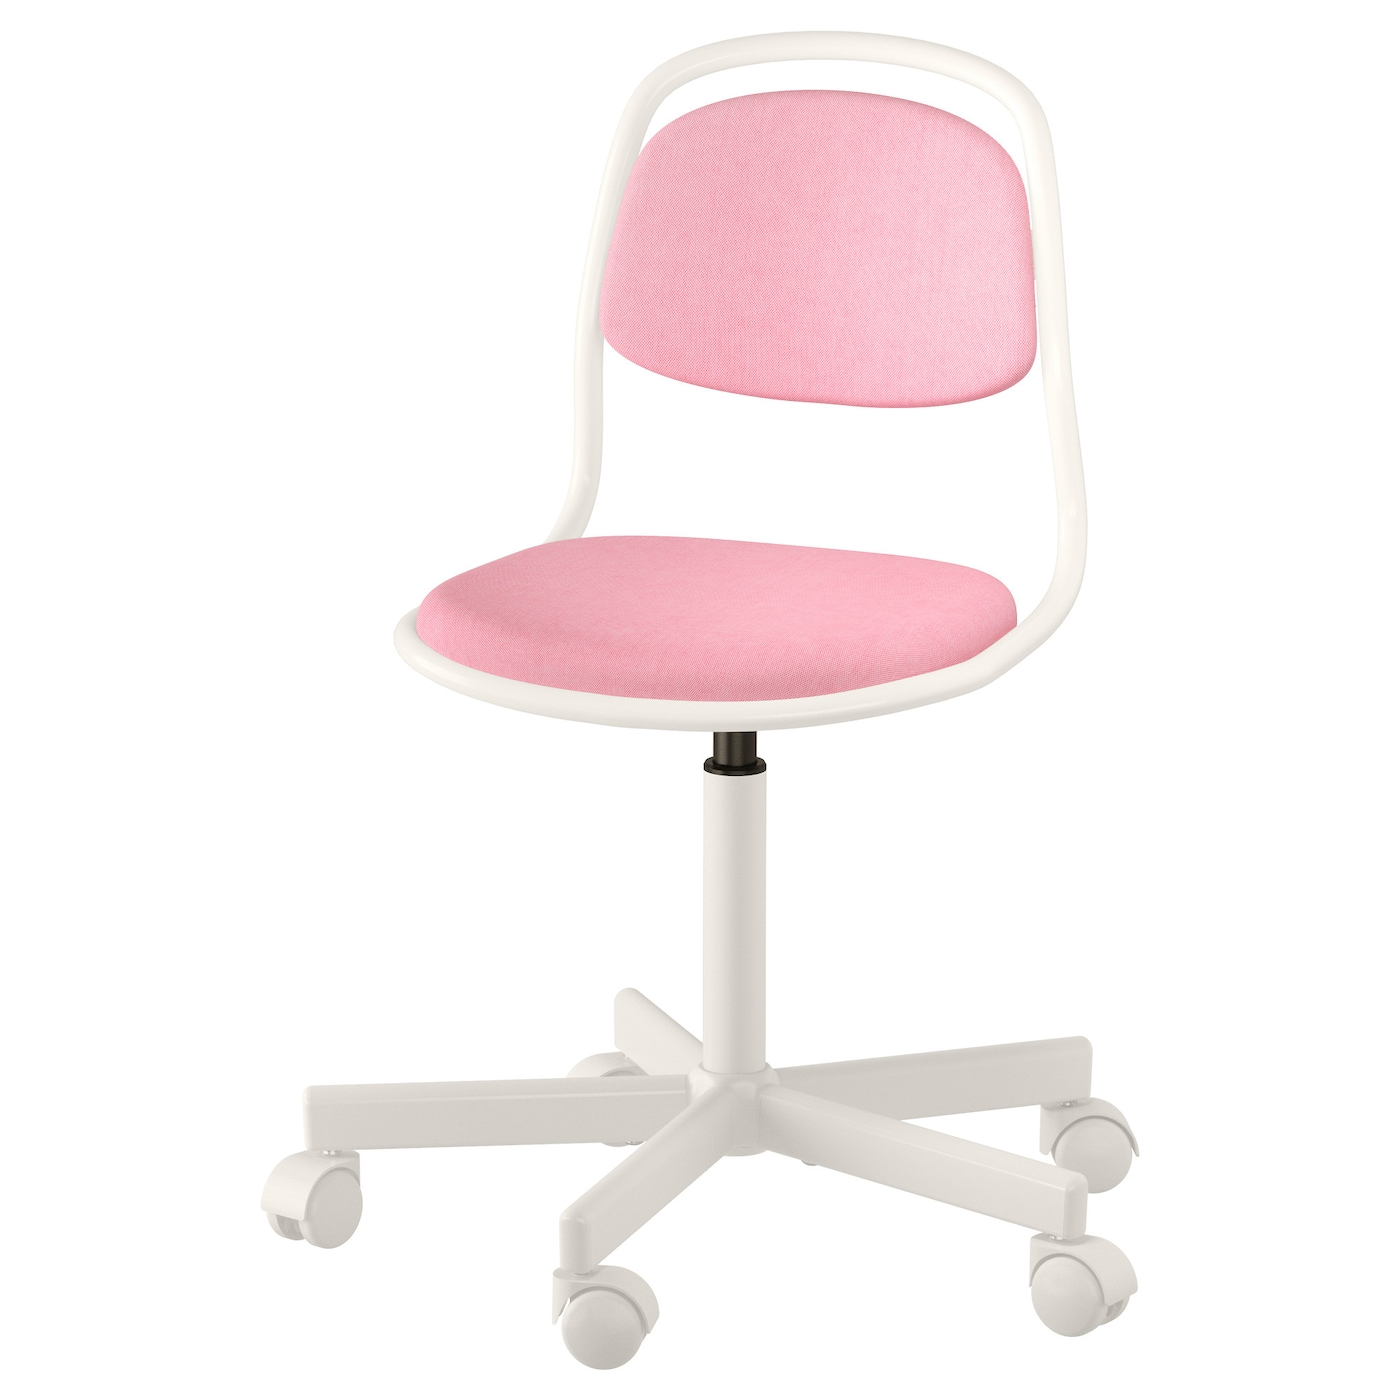 214 Rfj 196 Ll Children S Desk Chair White Vissle Pink Ikea